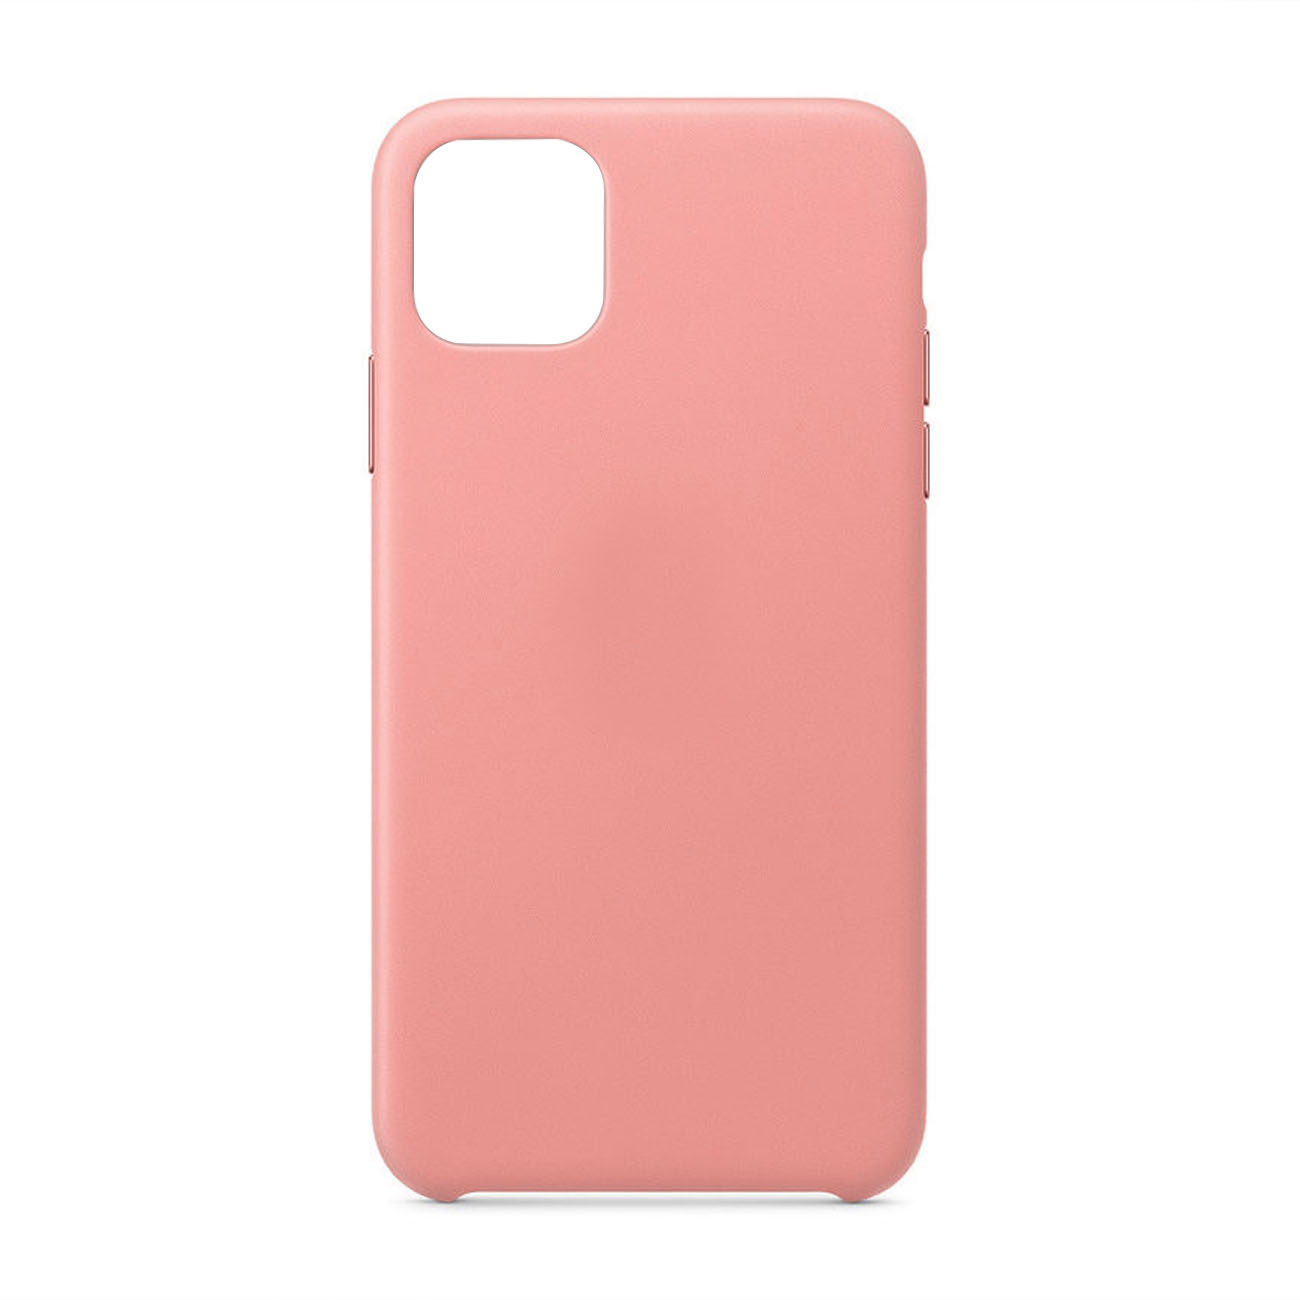 Apple iPhone 11 Pro Max Gummy Cases In Pink